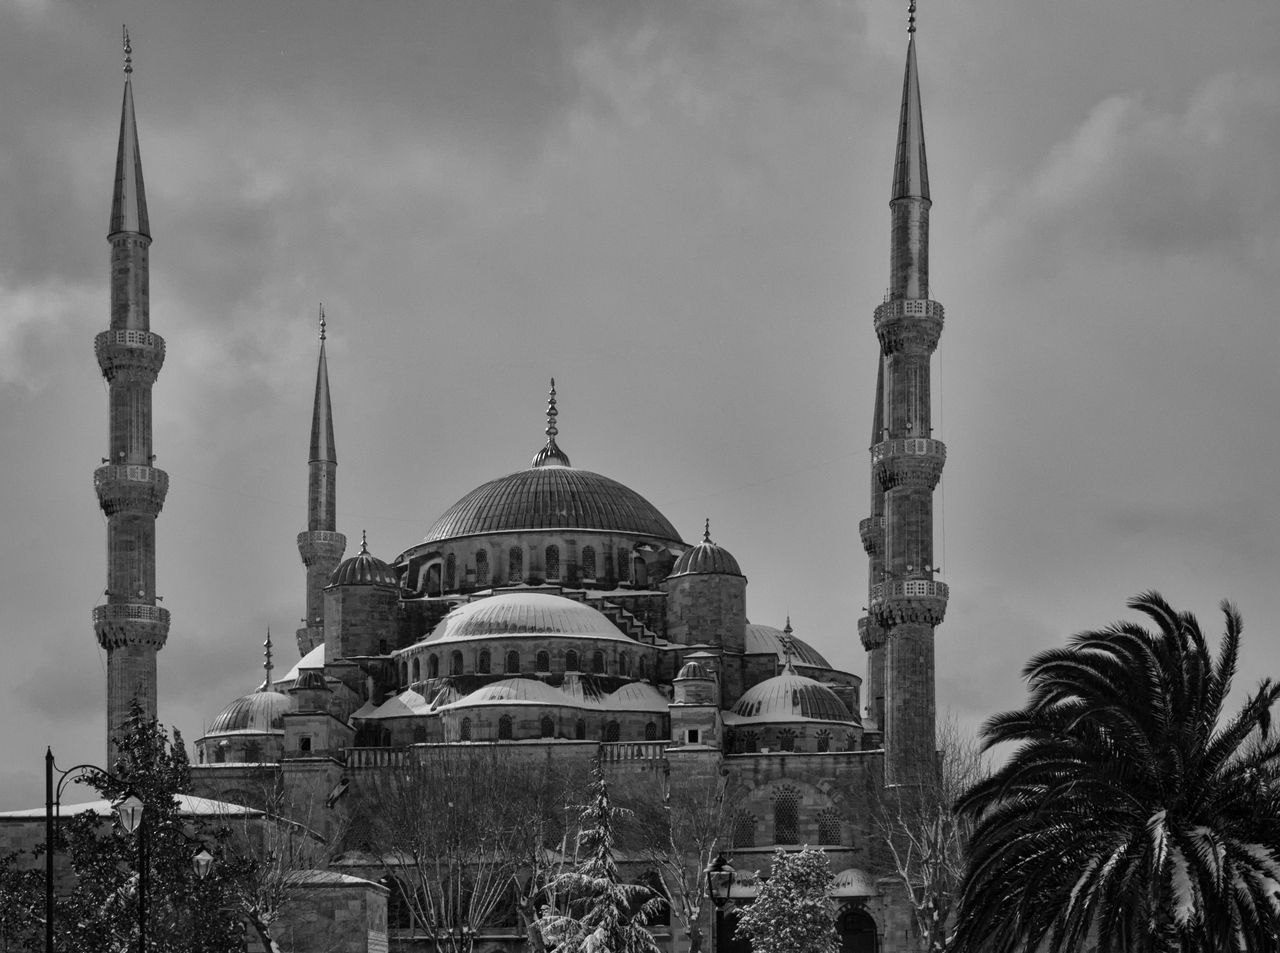 Blue Mosque Abstract, Background, Beautiful, Beauty, Blue, Bright, Cold, Cool, Country, Day, Field,freeze, Frosty, Frozen, Happy, Ice, Landscape, Nature, Outdoors, Outside, Pattern, Play, Playing, Scene, Season, Seasonal, Sky, Snow, Snowflake, Snowy, Space, Tree, Vac Architecture Blue Mosque, Ancient, Arabic, Architectural, Architecture, Art, Asia, Asian, Attraction, Aya, Blue, Building, City, Culture, Day, Dome, Eastern, Exterior, Famous, Hagia, Heritage, Historic, History, Horizontal, Islam, Islamic, Istanbul, Landmark, Landscap Building Exterior Built Structure Communications Tower Dome Famous Place International Landmark Islam Mosque Place Of Worship Religion Spire  Spirituality Sultan Ahmet, Istanbul, Turkey, Europe, European, Middle Tower